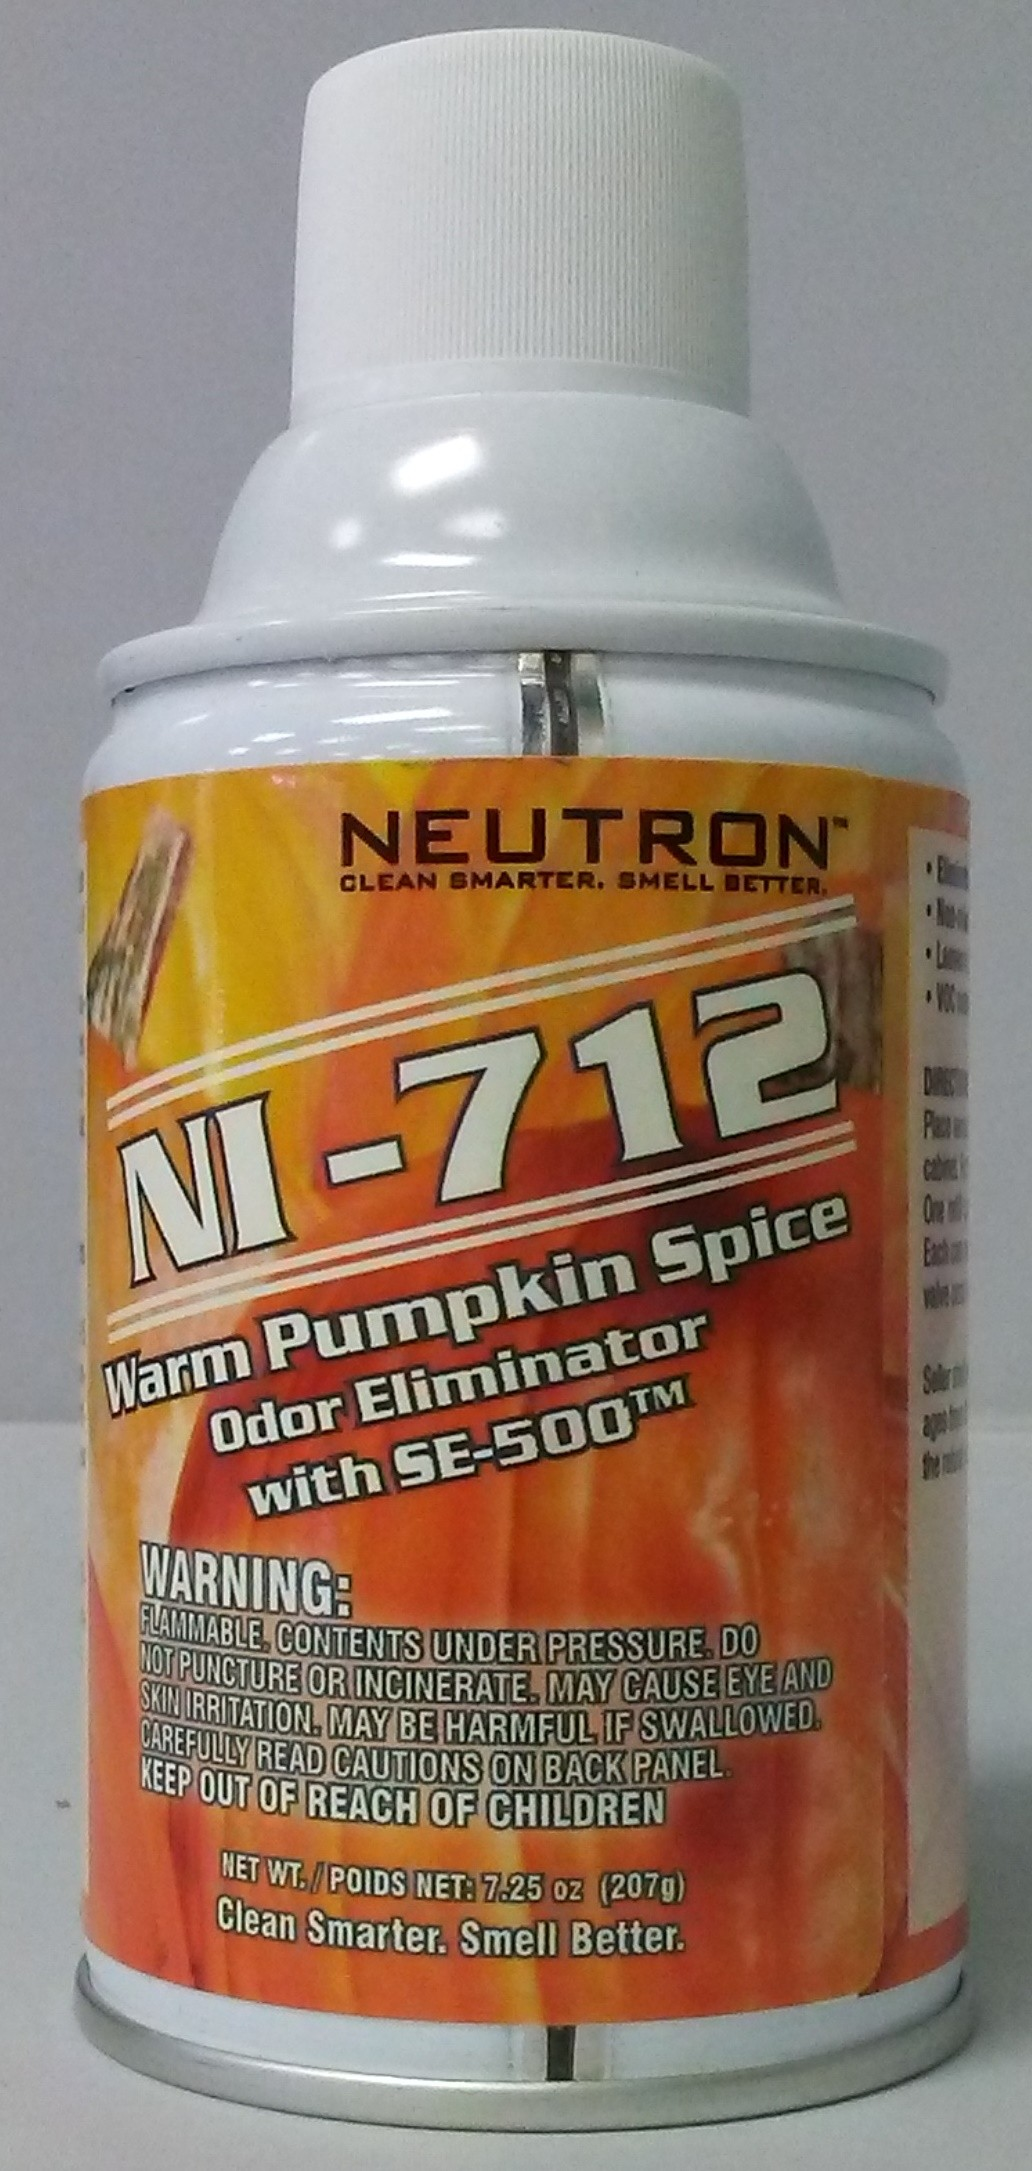 NI-712 Odor Eliminator, Warm Pumpkin Spice (1) Dispenser